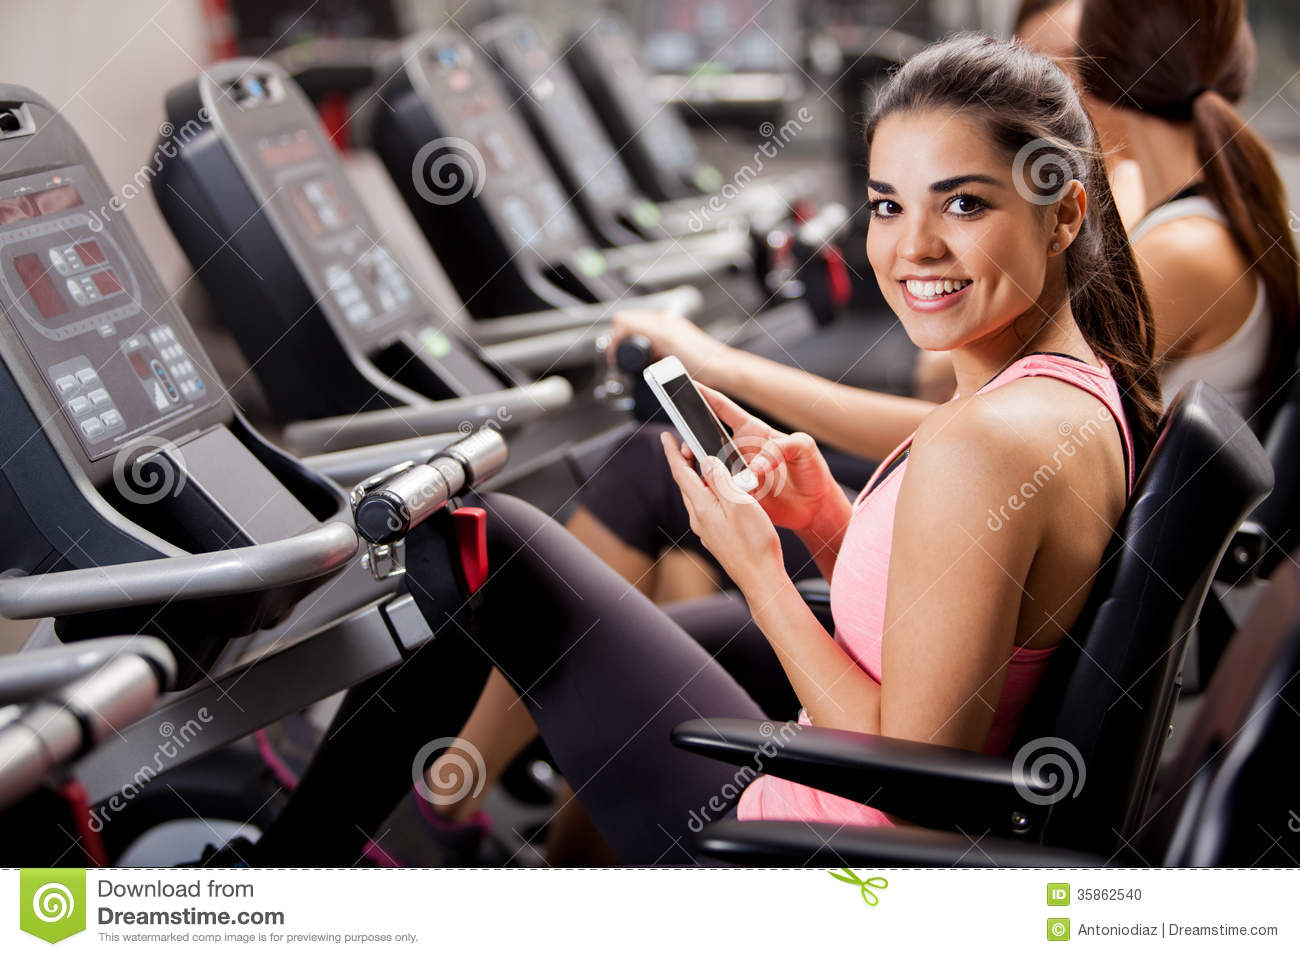 Social networking at the gym stock photo image 35862540 for Gimnasio yong